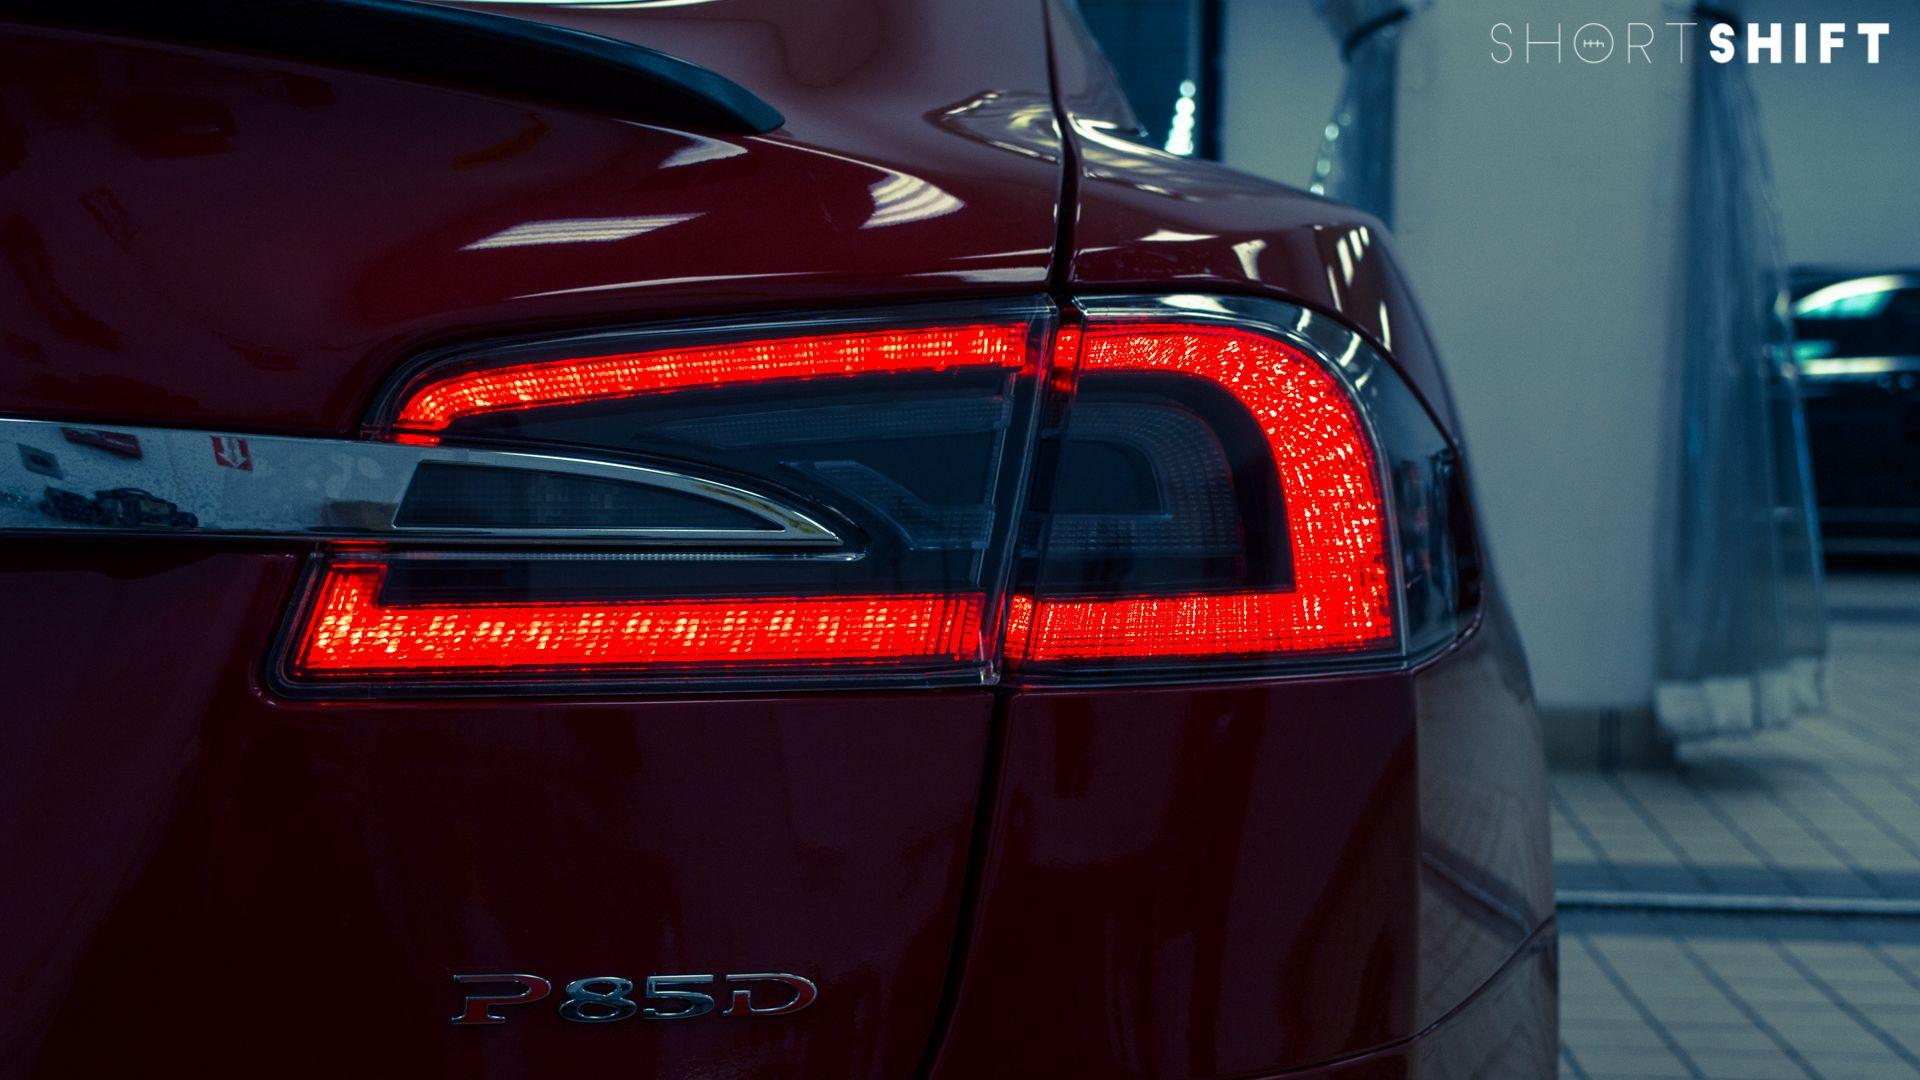 Tesla Model S Phone Wallpapers U S Reviewing Suspension Plaints In